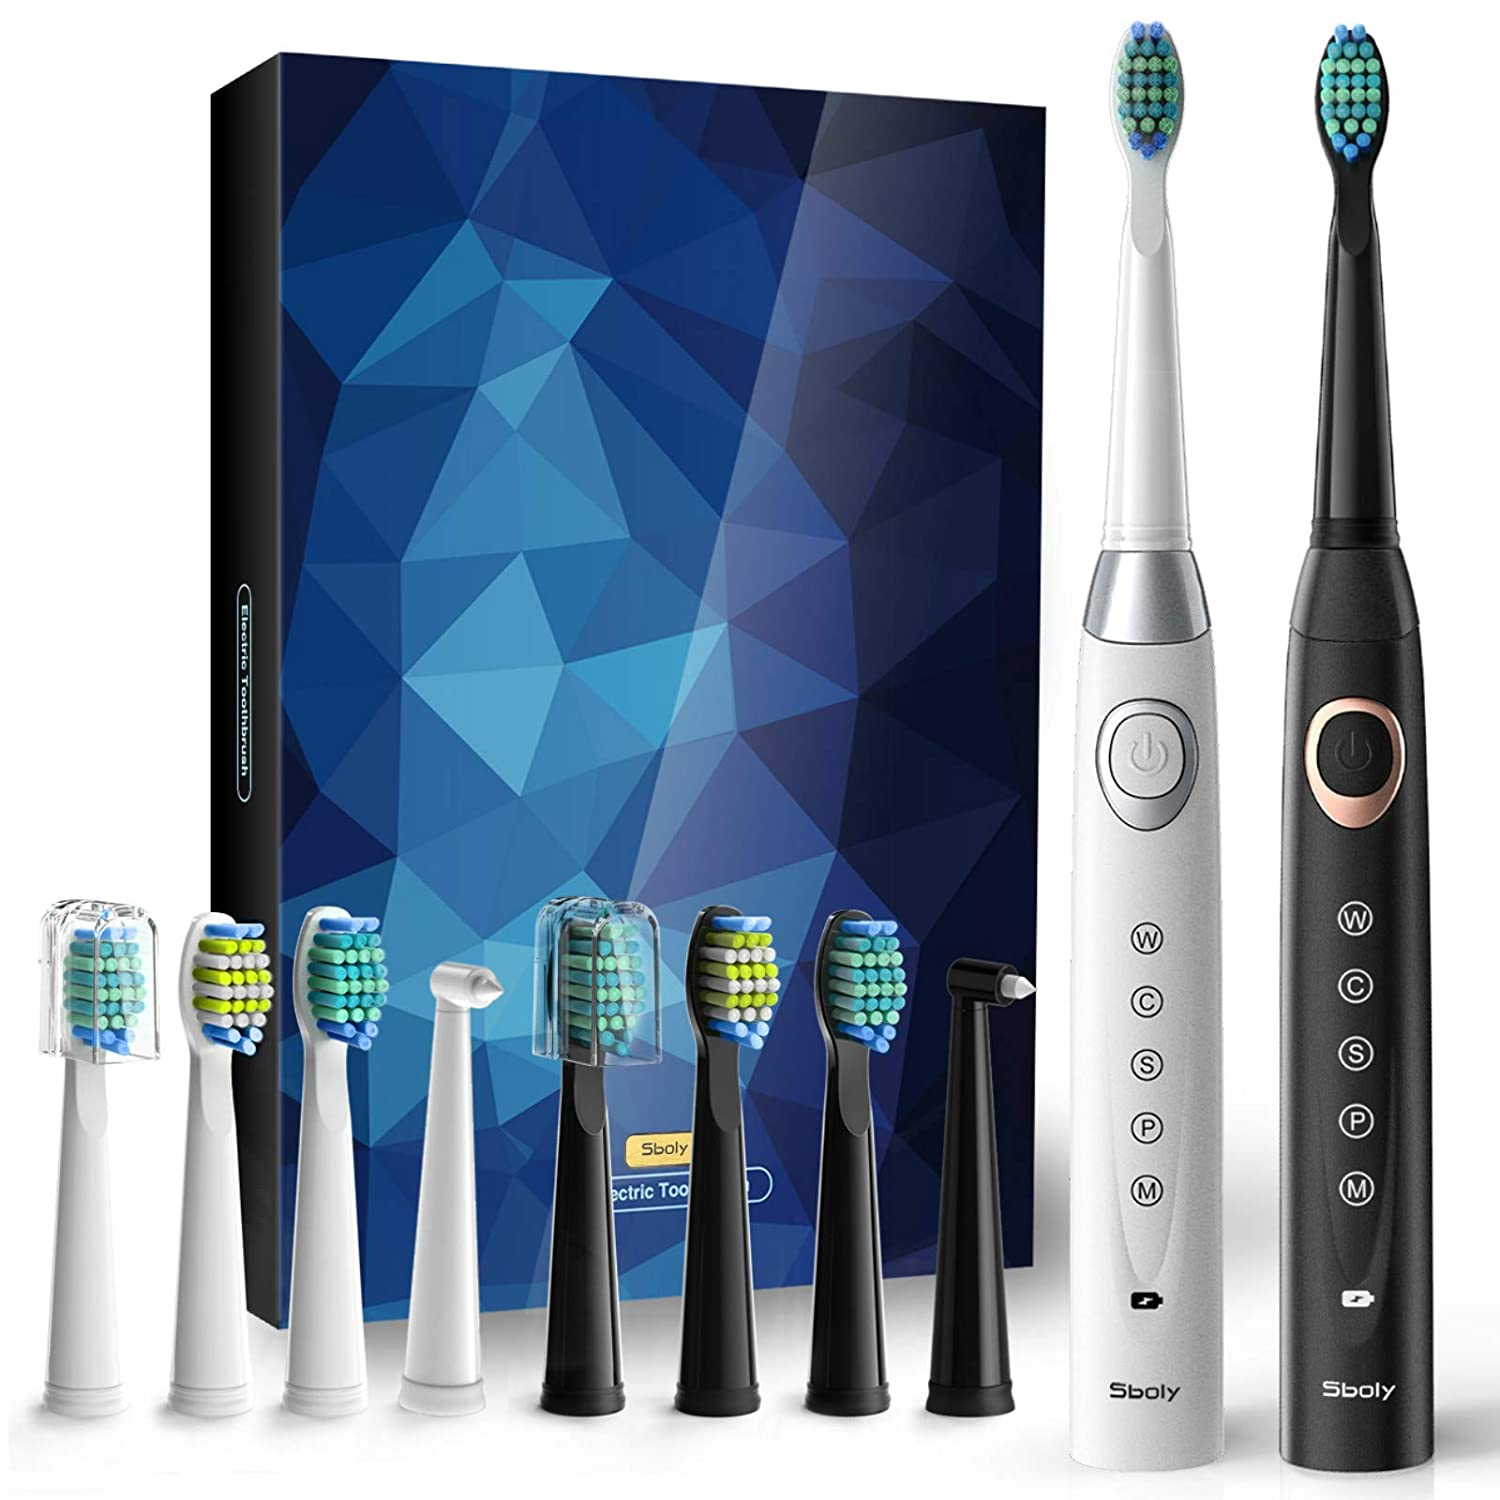 Sboly Sonic 5-Mode 1 White and 1 Black Electric Toothbrushes for Kids